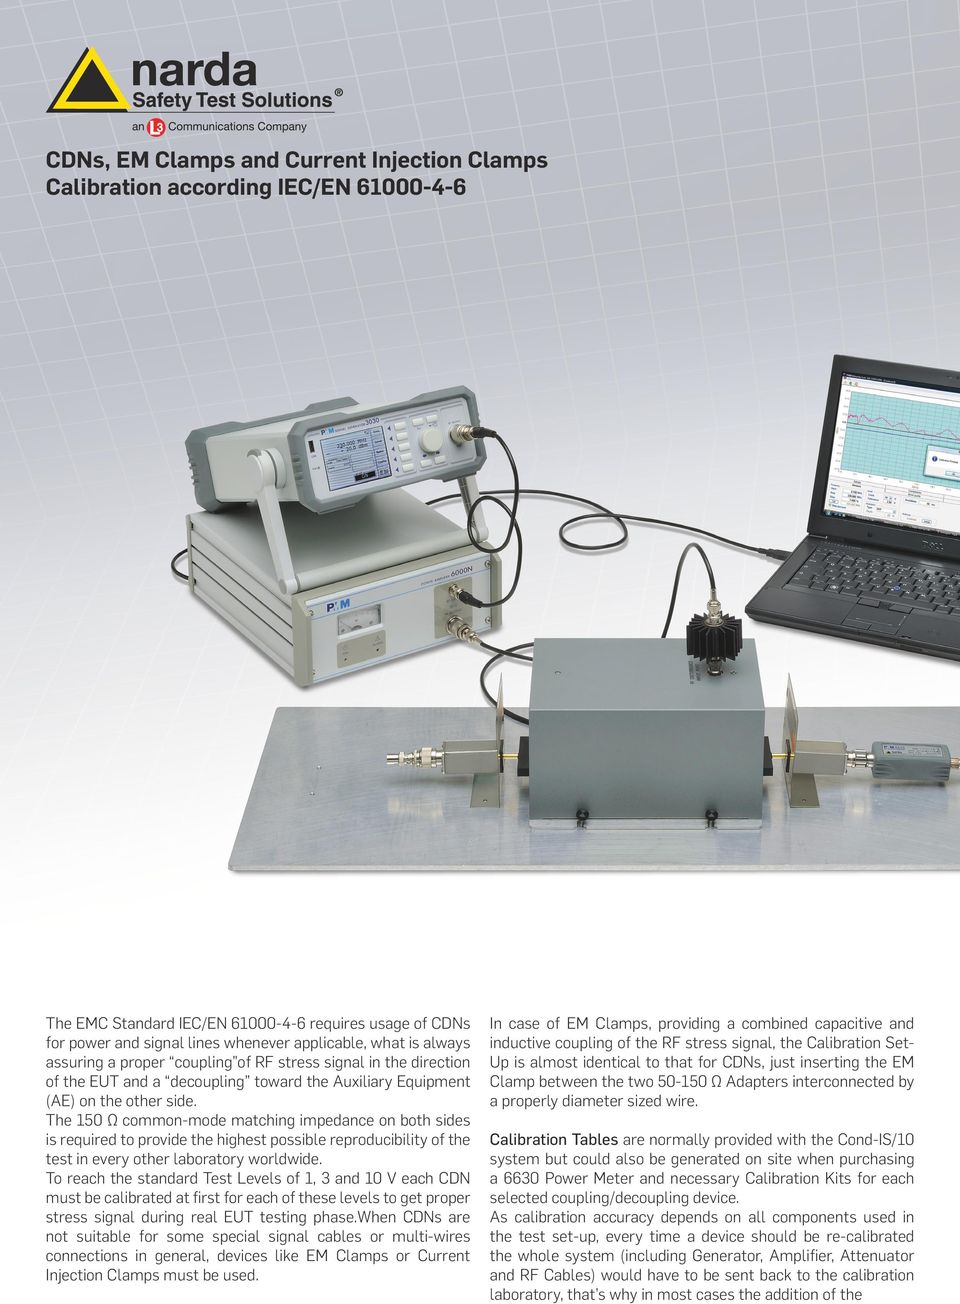 The 150 Ω common-mode matching impedance on both sides is required to provide the highest possible reproducibility of the test in every other laboratory worldwide.